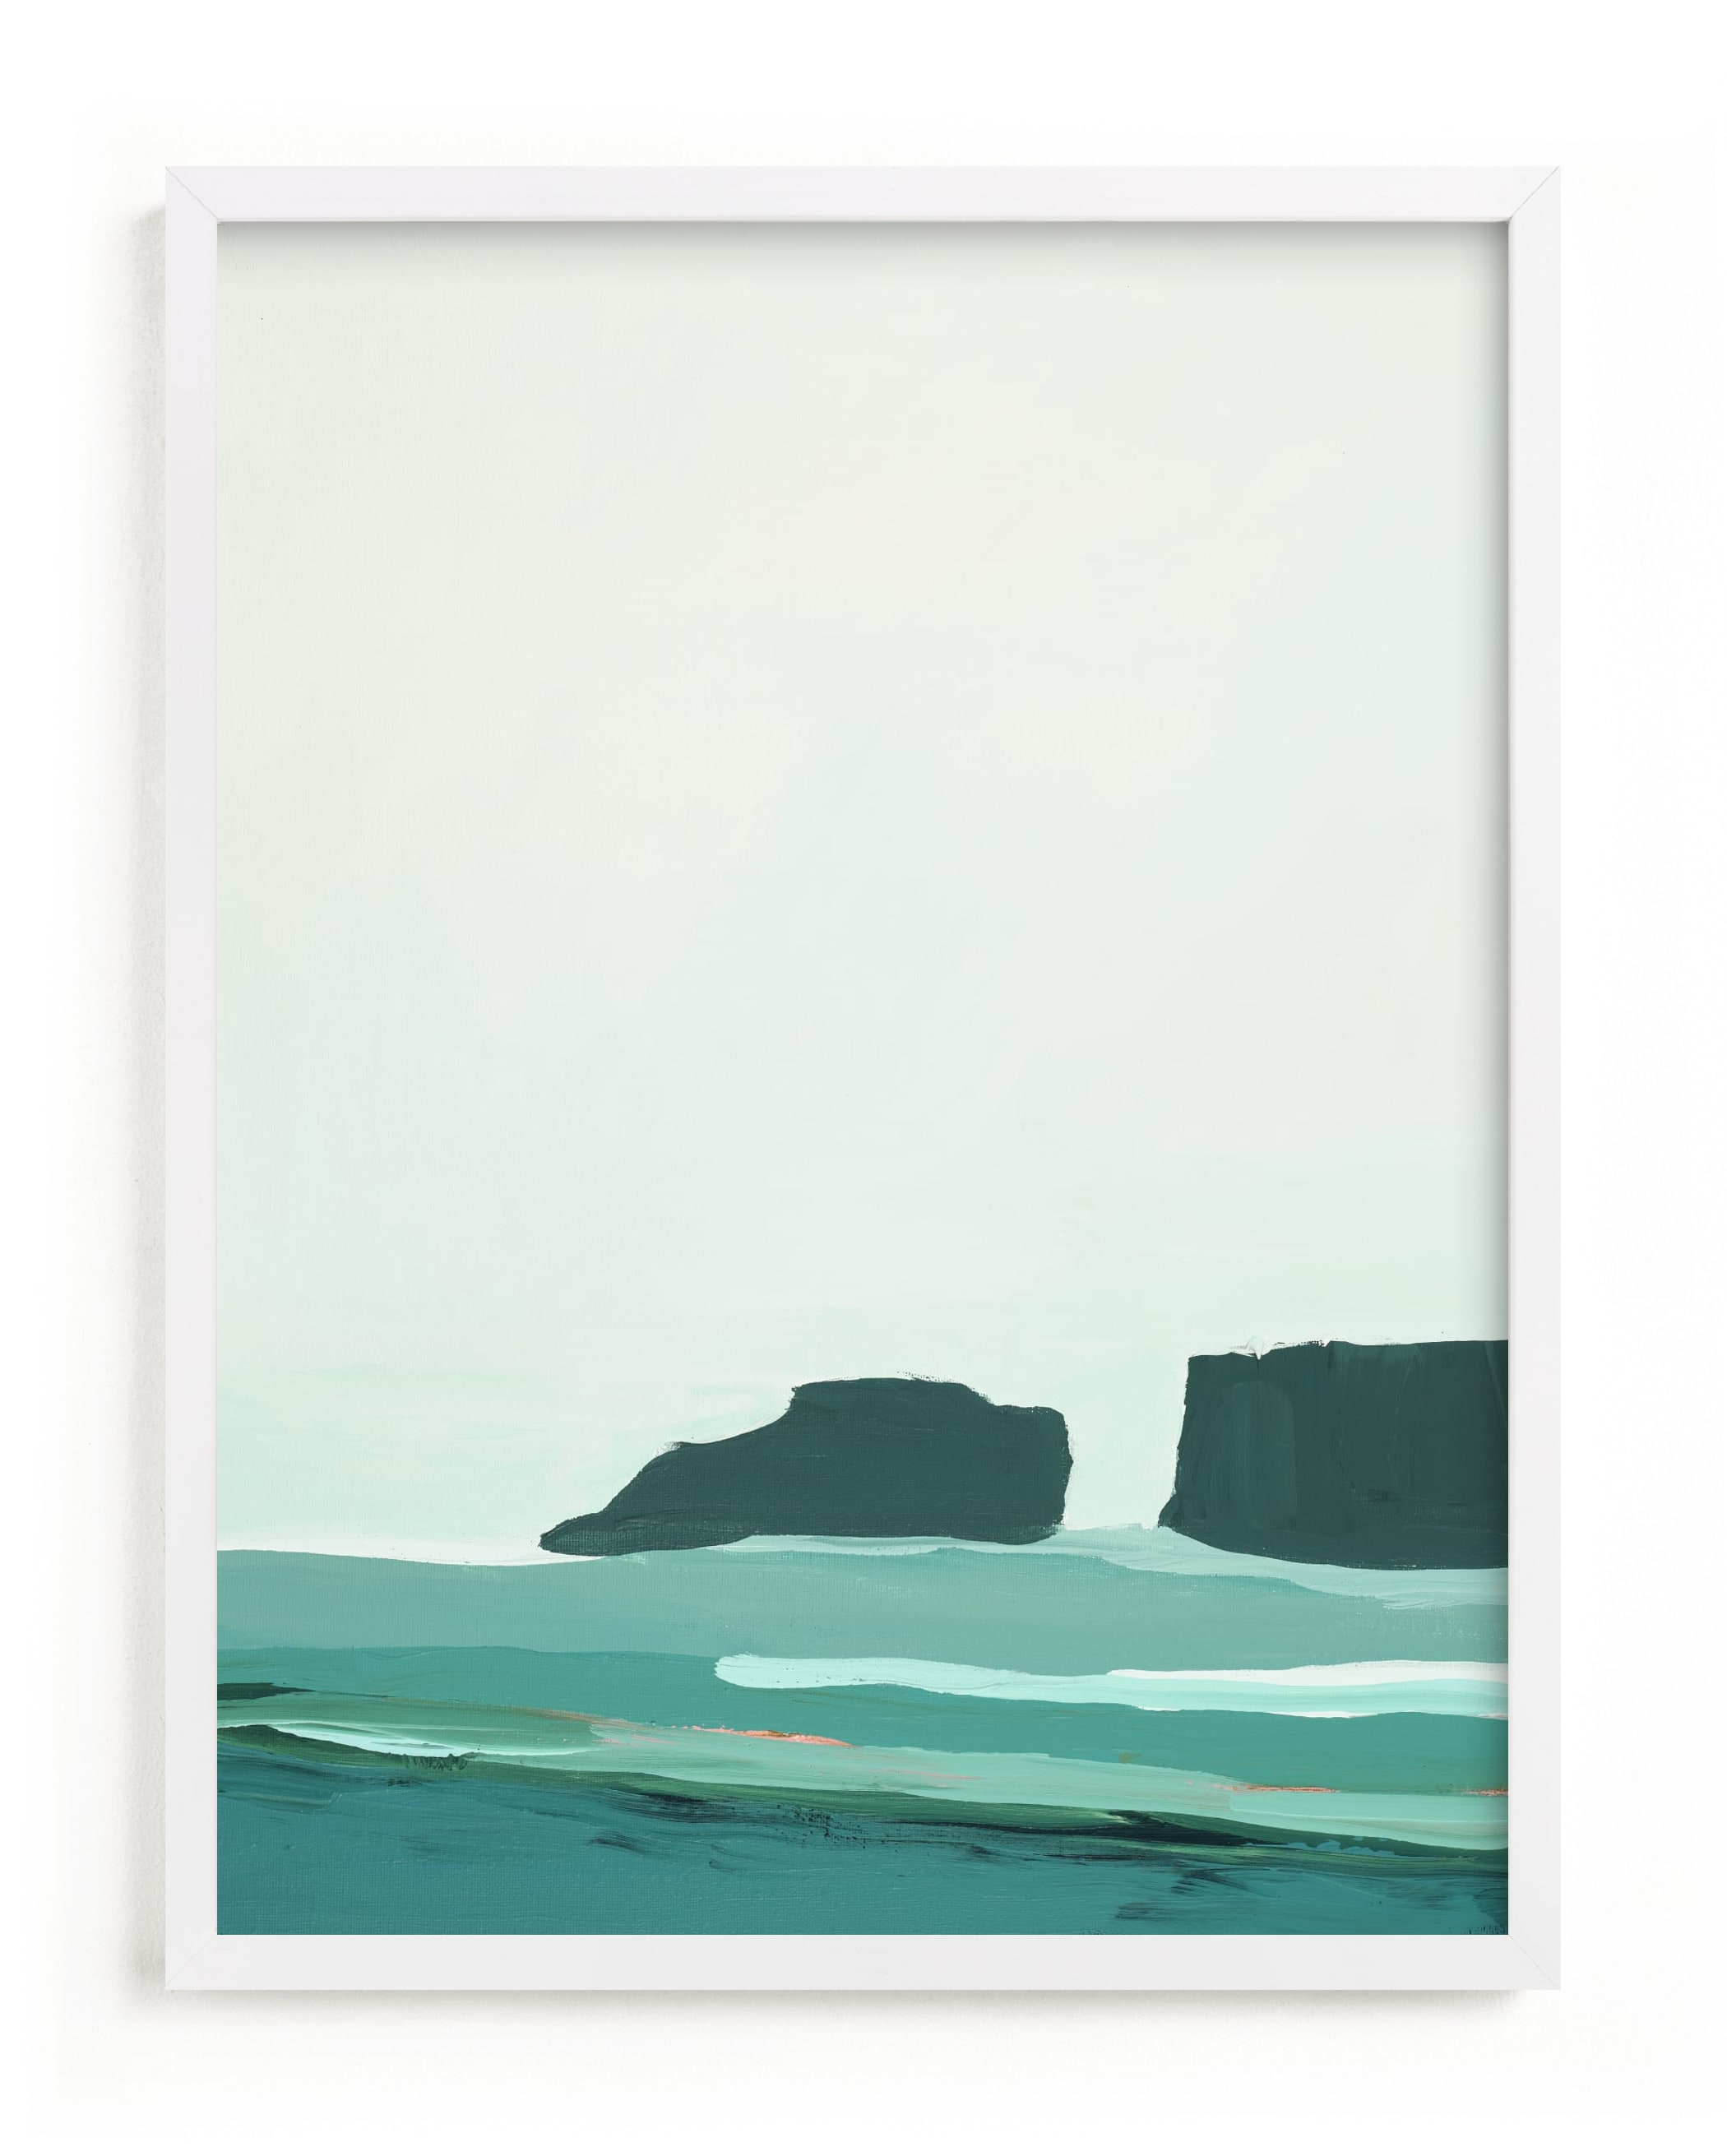 This is a blue art by Caryn Owen called Abstract Pacific Seascape Diptych 1.